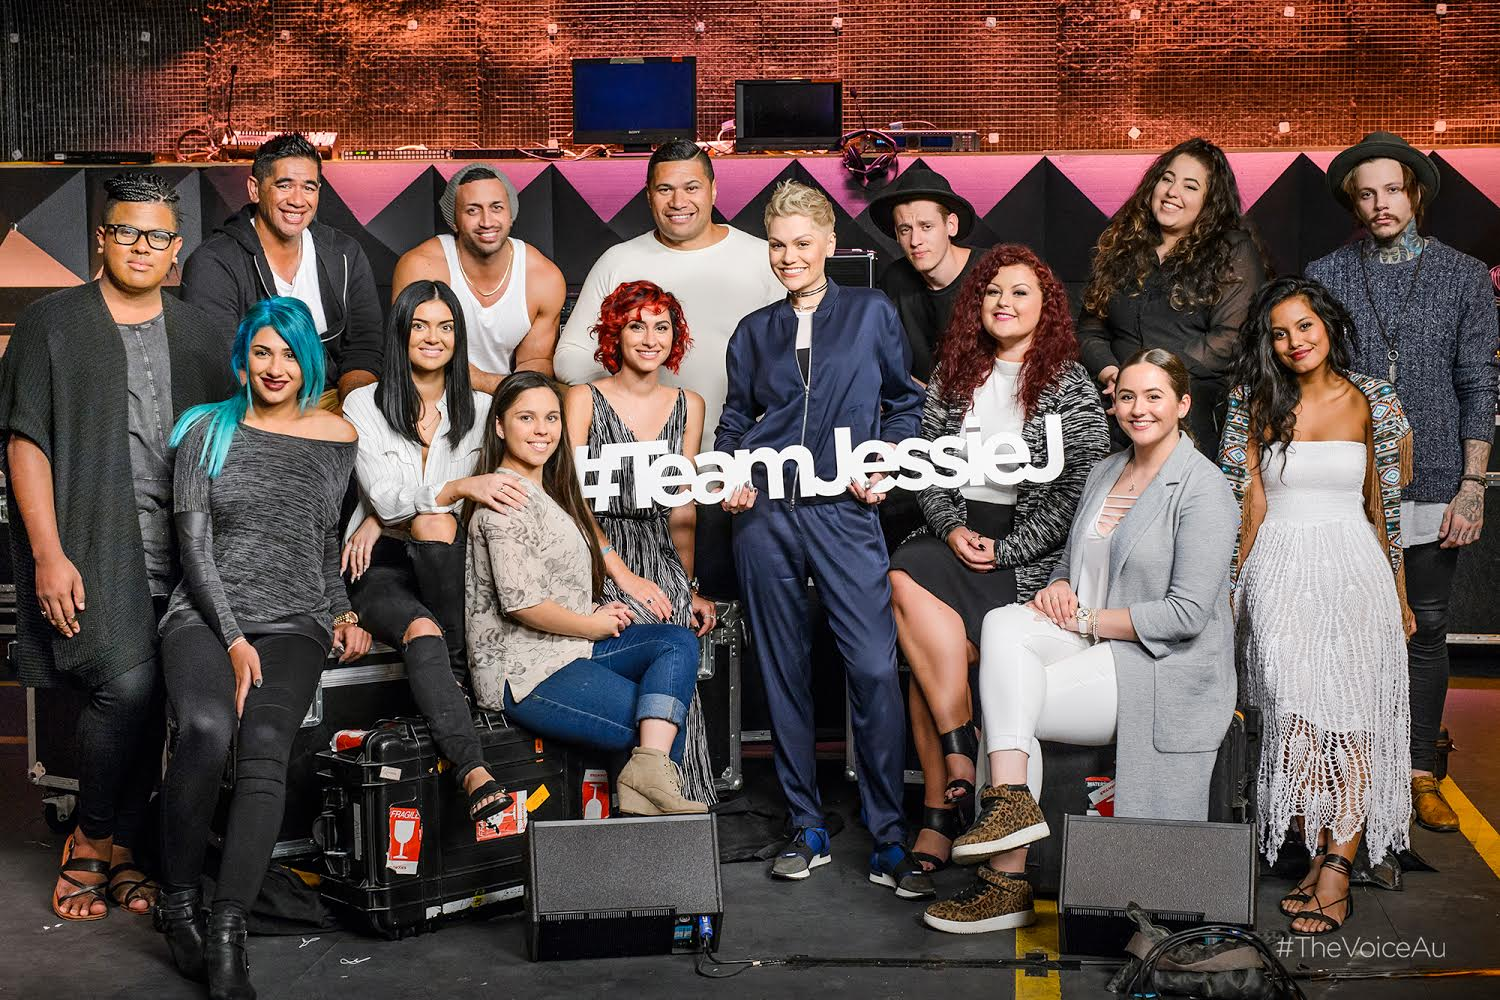 Here's #TeamJessieJ for #TheVoiceAu. So proud of each and every one!  Battles kick off TONIGHT! https://t.co/jc9SP4IpWU